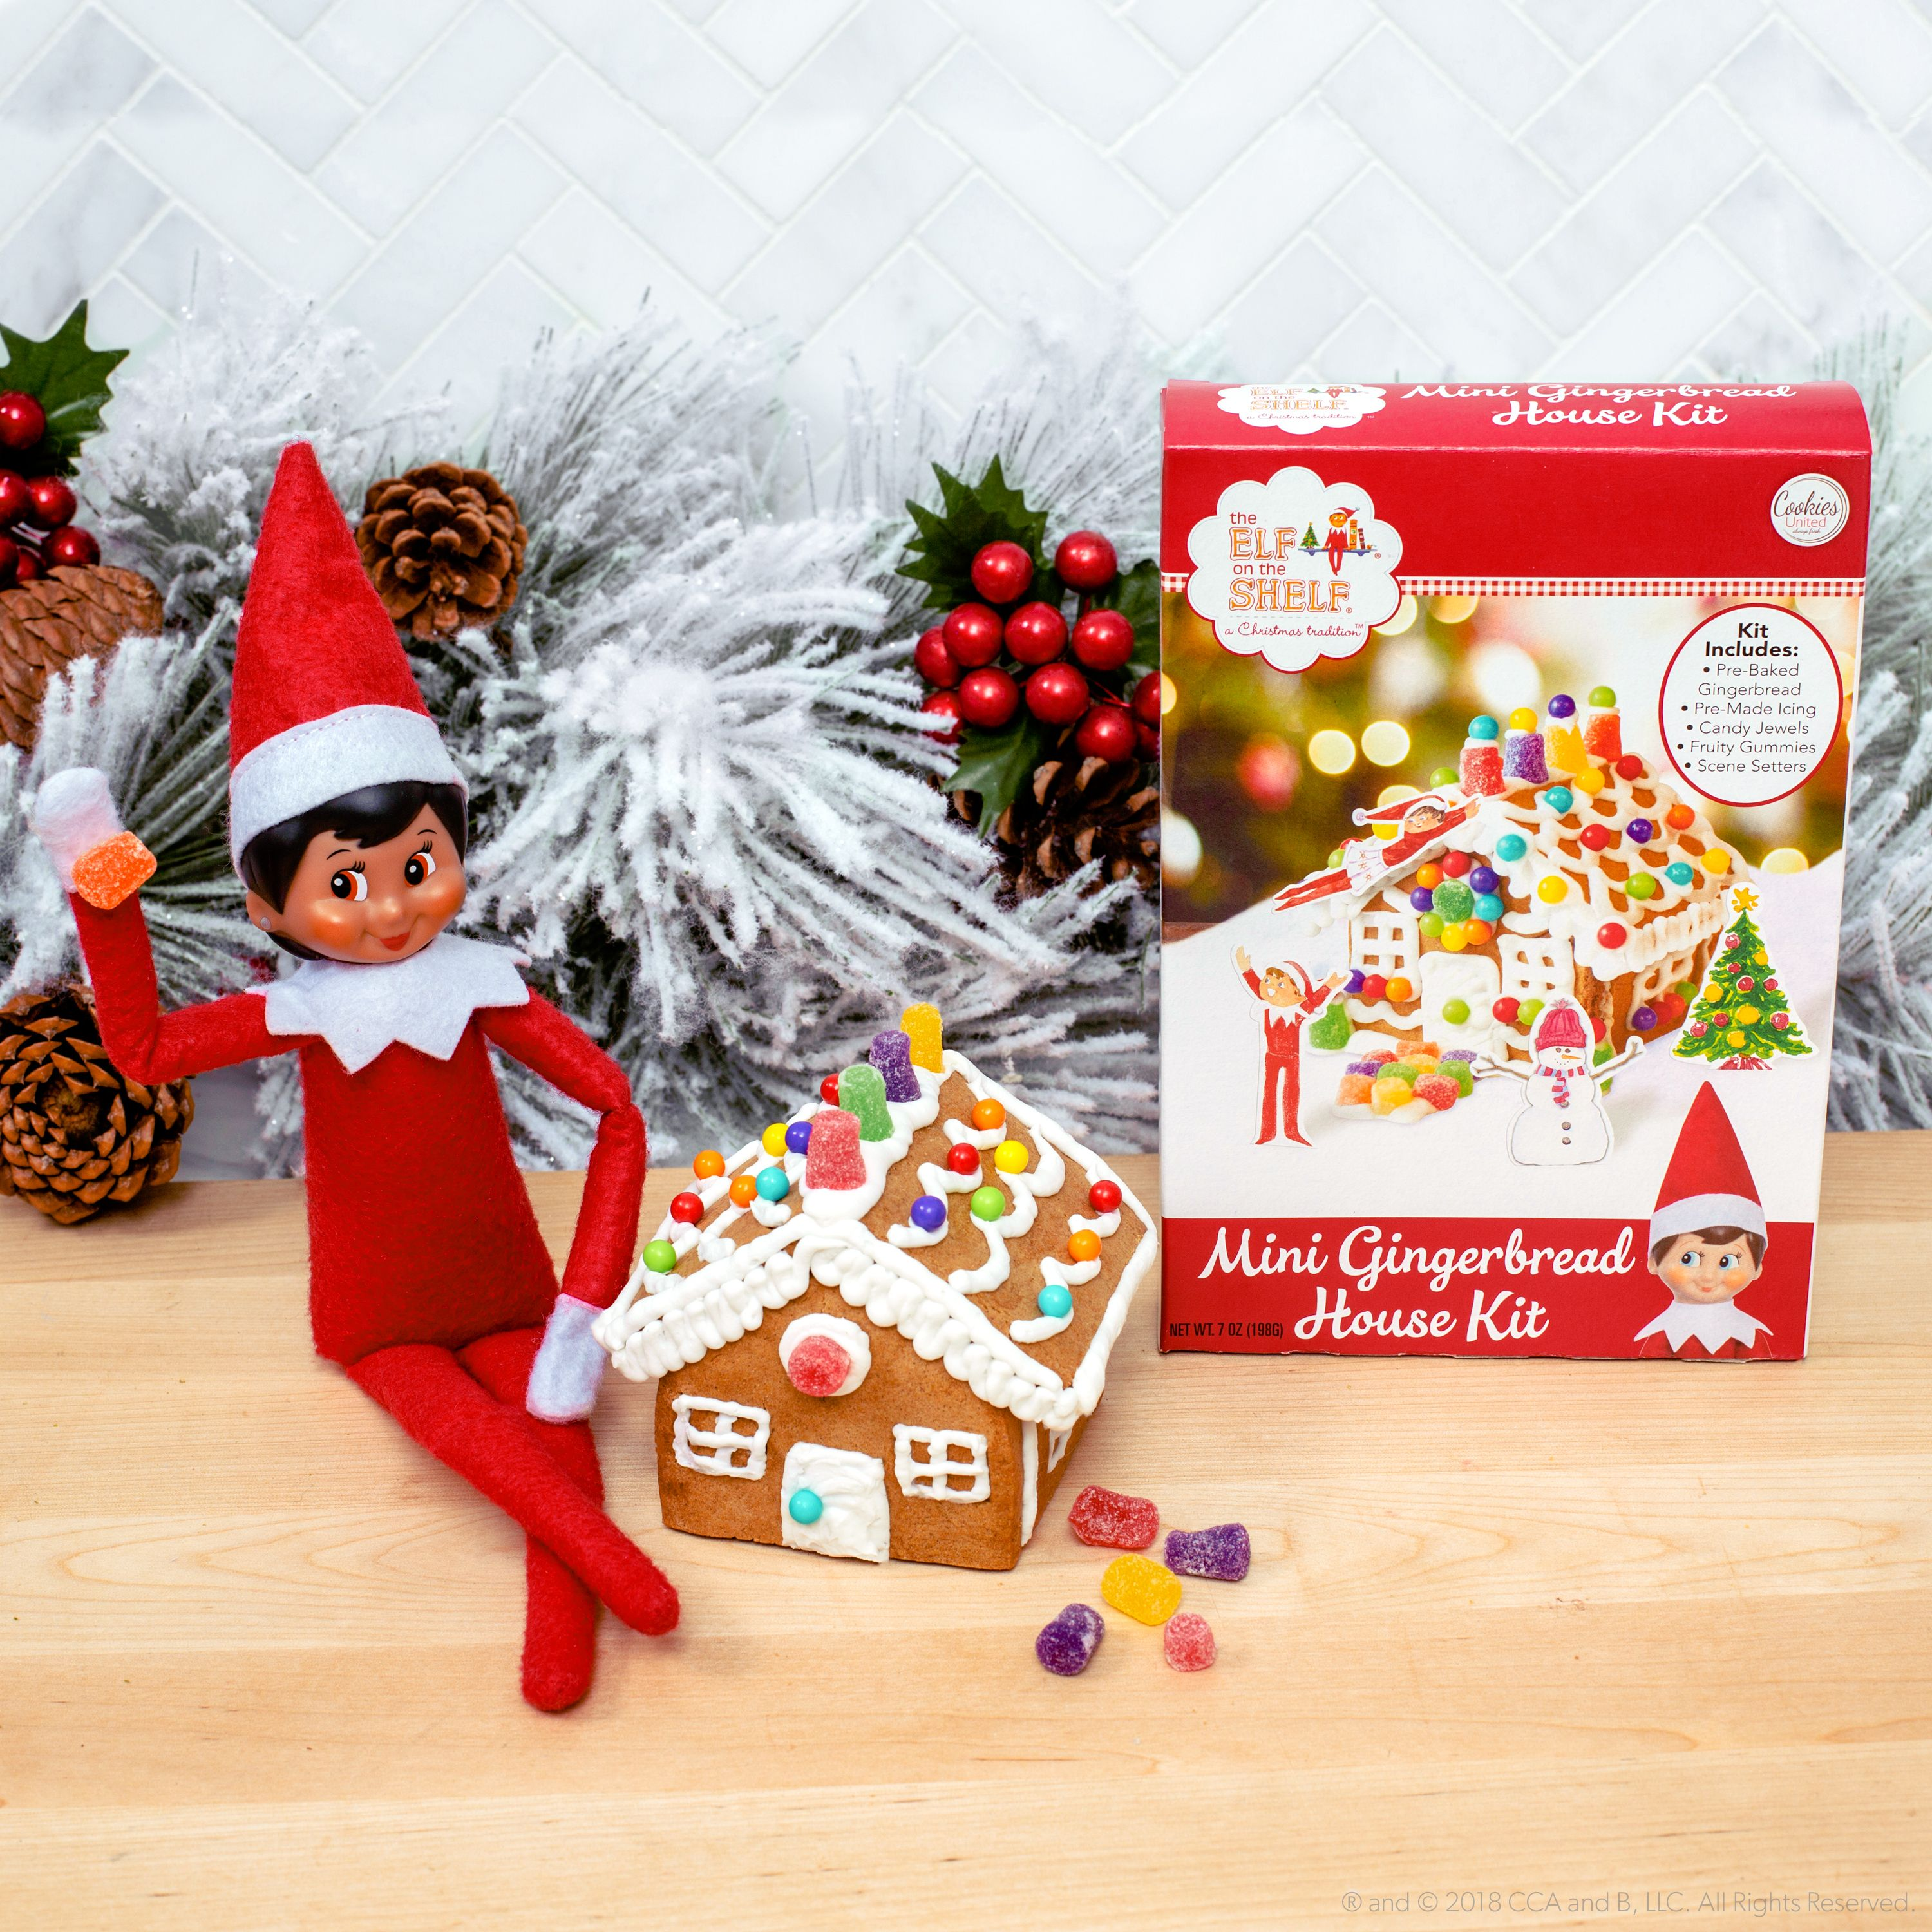 Take A Look At This Mini Gingerbread House Available Only At Cvs